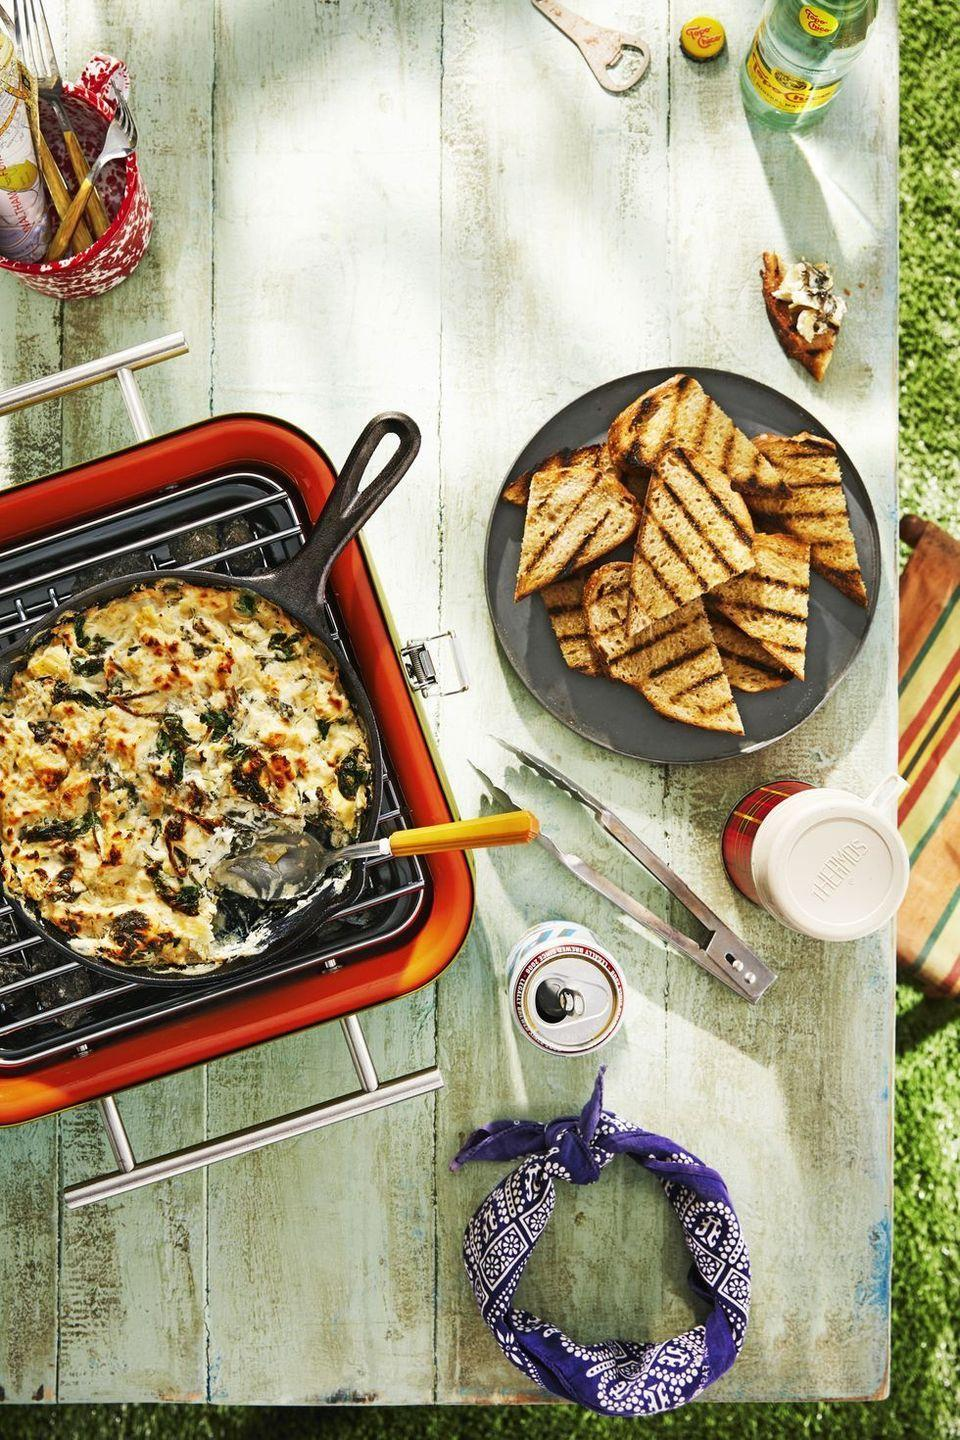 """<p>A classic app get a smoky treatment when cooked on a a grill. Serve with oil and grilled bread for dipping. <br></p><p><strong><a href=""""https://www.countryliving.com/food-drinks/a28071095/skillet-spinach-artichoke-dip-with-fire-roasted-bread-recipe/"""" rel=""""nofollow noopener"""" target=""""_blank"""" data-ylk=""""slk:Get the recipe"""" class=""""link rapid-noclick-resp"""">Get the recipe</a>.</strong><br> </p>"""